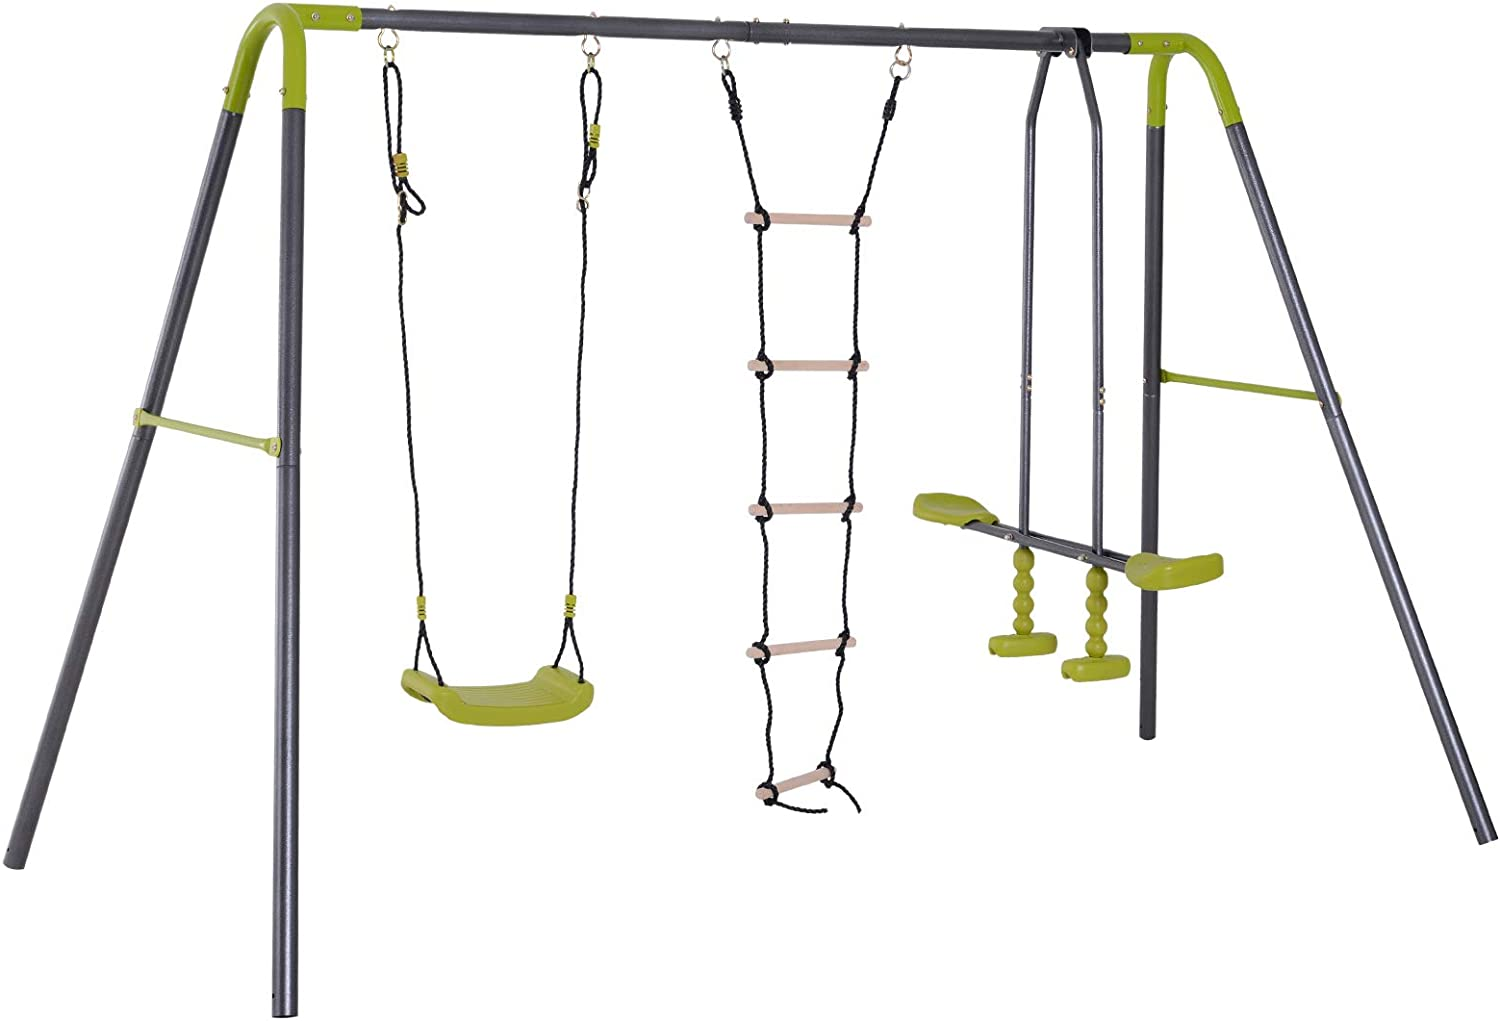 HOMCOM 3 in 1 Ultra-Cheap Deals Kid Swing Set Face Chair G Selling Double to